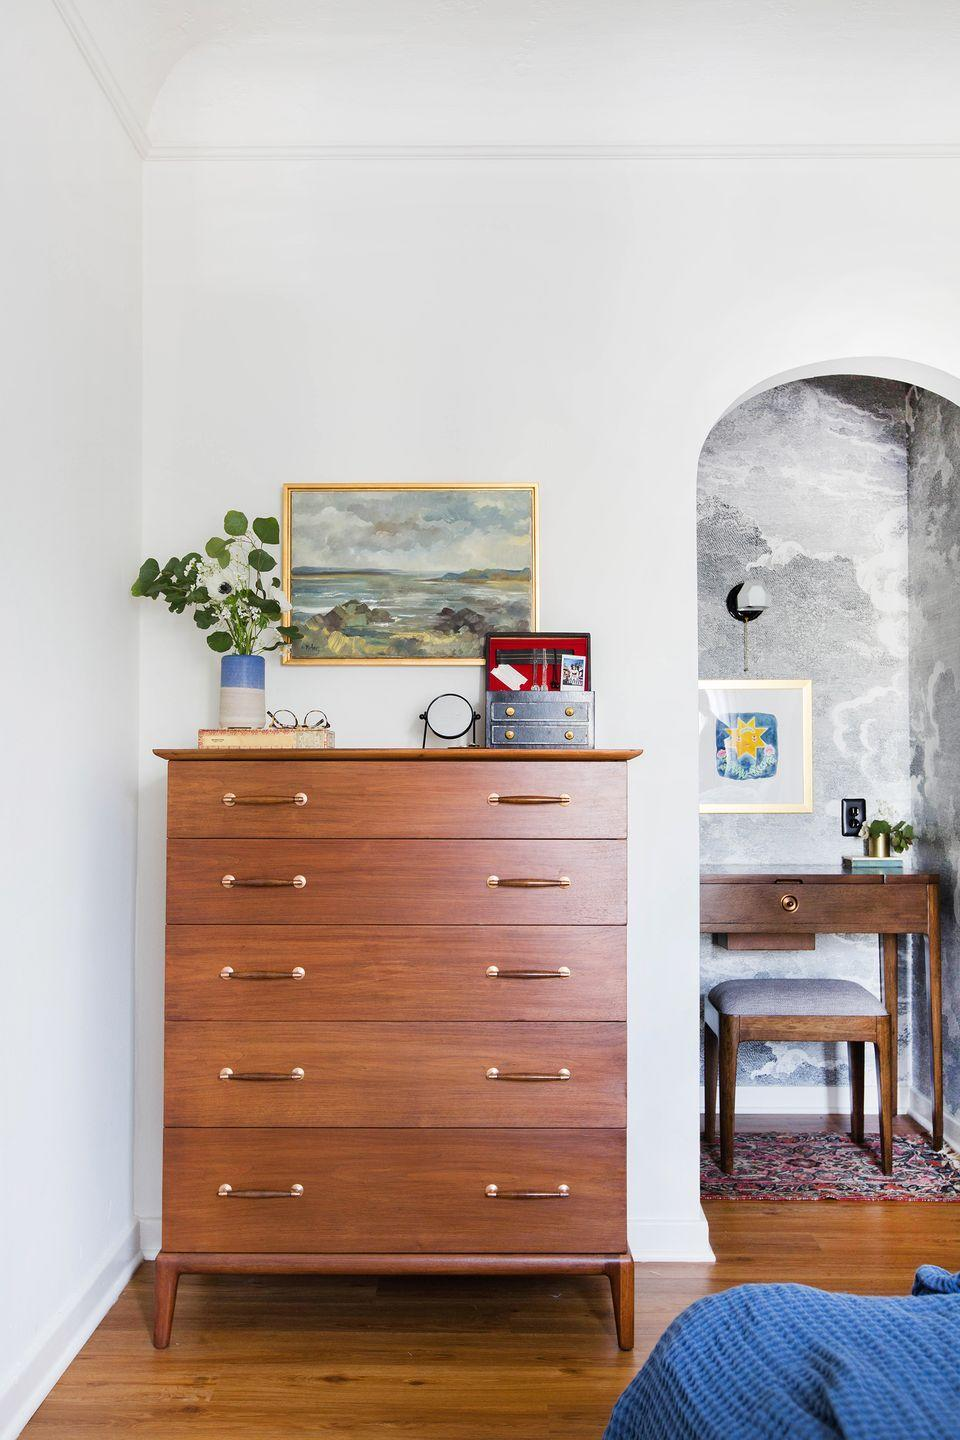 """<p>Leave it to <a href=""""https://stylebyemilyhenderson.com/"""" rel=""""nofollow noopener"""" target=""""_blank"""" data-ylk=""""slk:Emily Henderson"""" class=""""link rapid-noclick-resp"""">Emily Henderson</a> to transform a bedroom closet into an inspired work-from-home space. She opened it up by removing the doors, brought in a vanity turned desk and an upholstered stool to make it cozy, and secured task lighting to the wall to increase the functionality. The final piece in the puzzle: sunny artwork and cloud-print wallpaper to make the room feel like a daydream. </p>"""